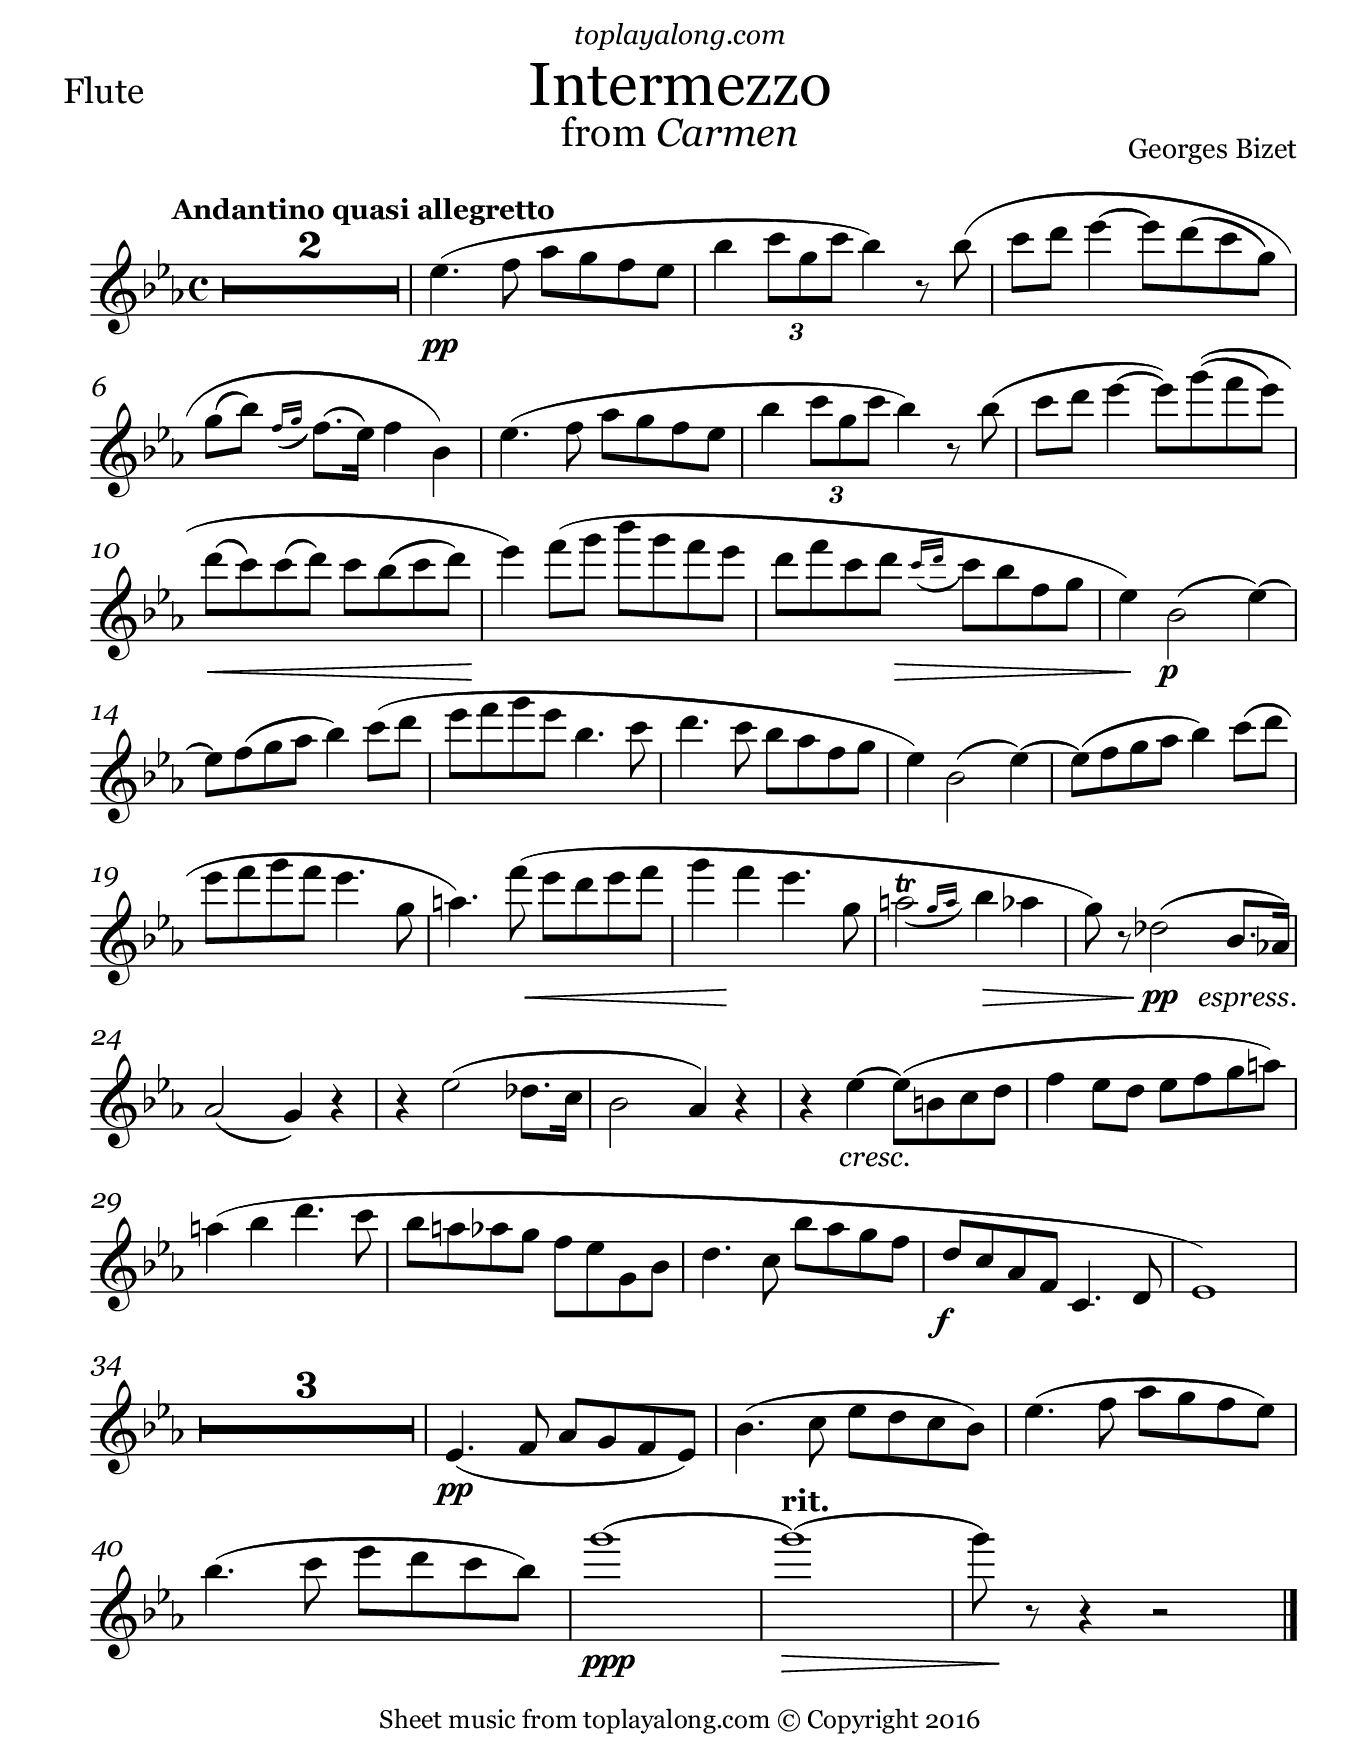 Intermezzo from Carmen by Bizet. Sheet music for Flute, page 1.